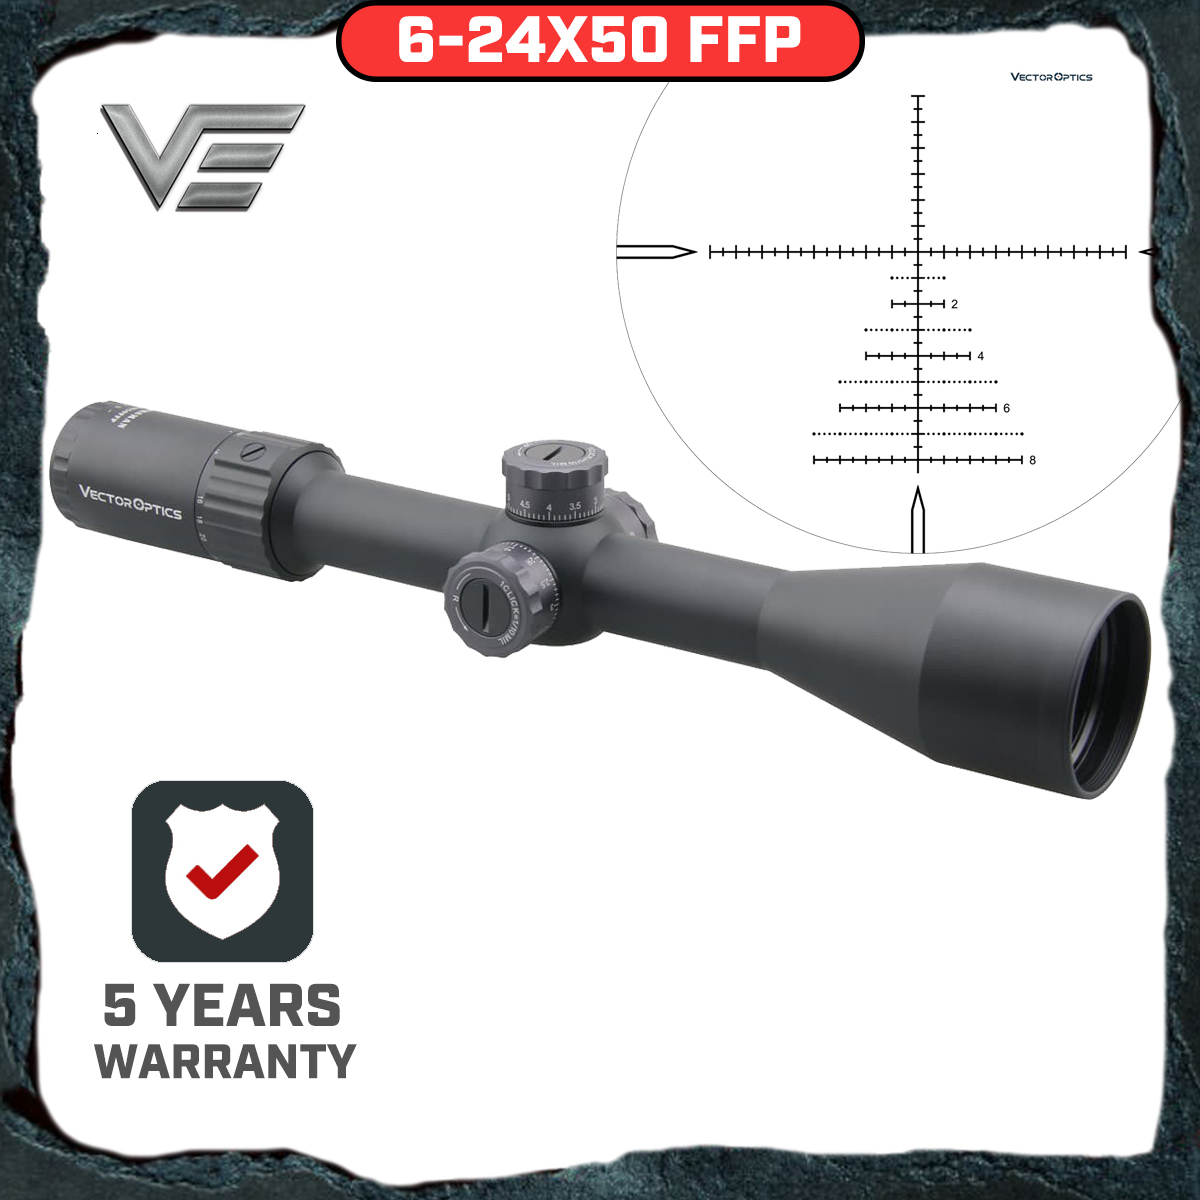 Vector Optics Marksman 6-24x50 FFP Tactical Riflescope Hunting Rifle Scope Side Focus Min 10Yds 1/10MIL Adjustment .30 06 Win